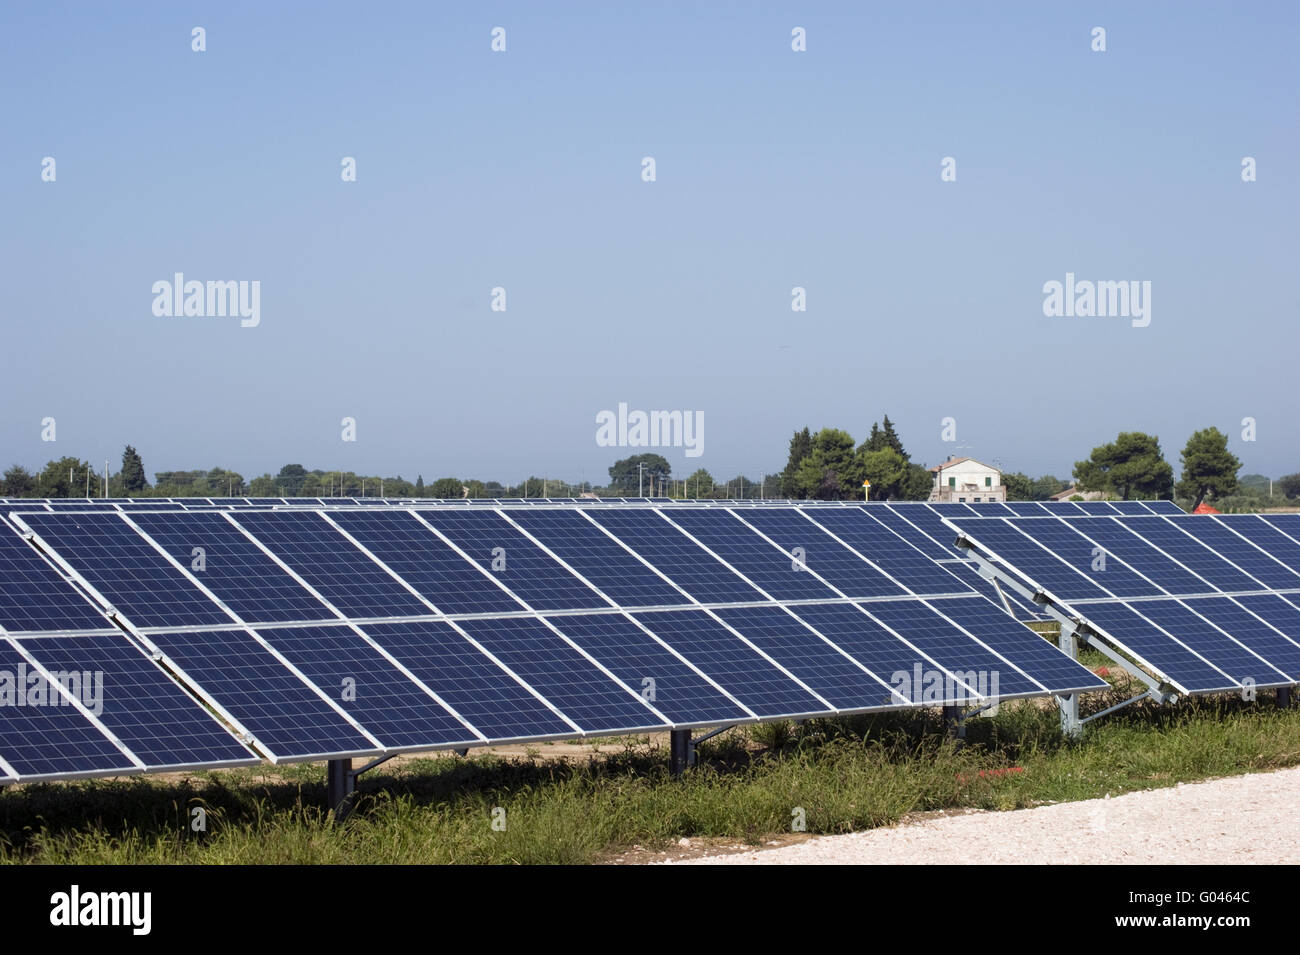 energy from sun panels - Stock Image